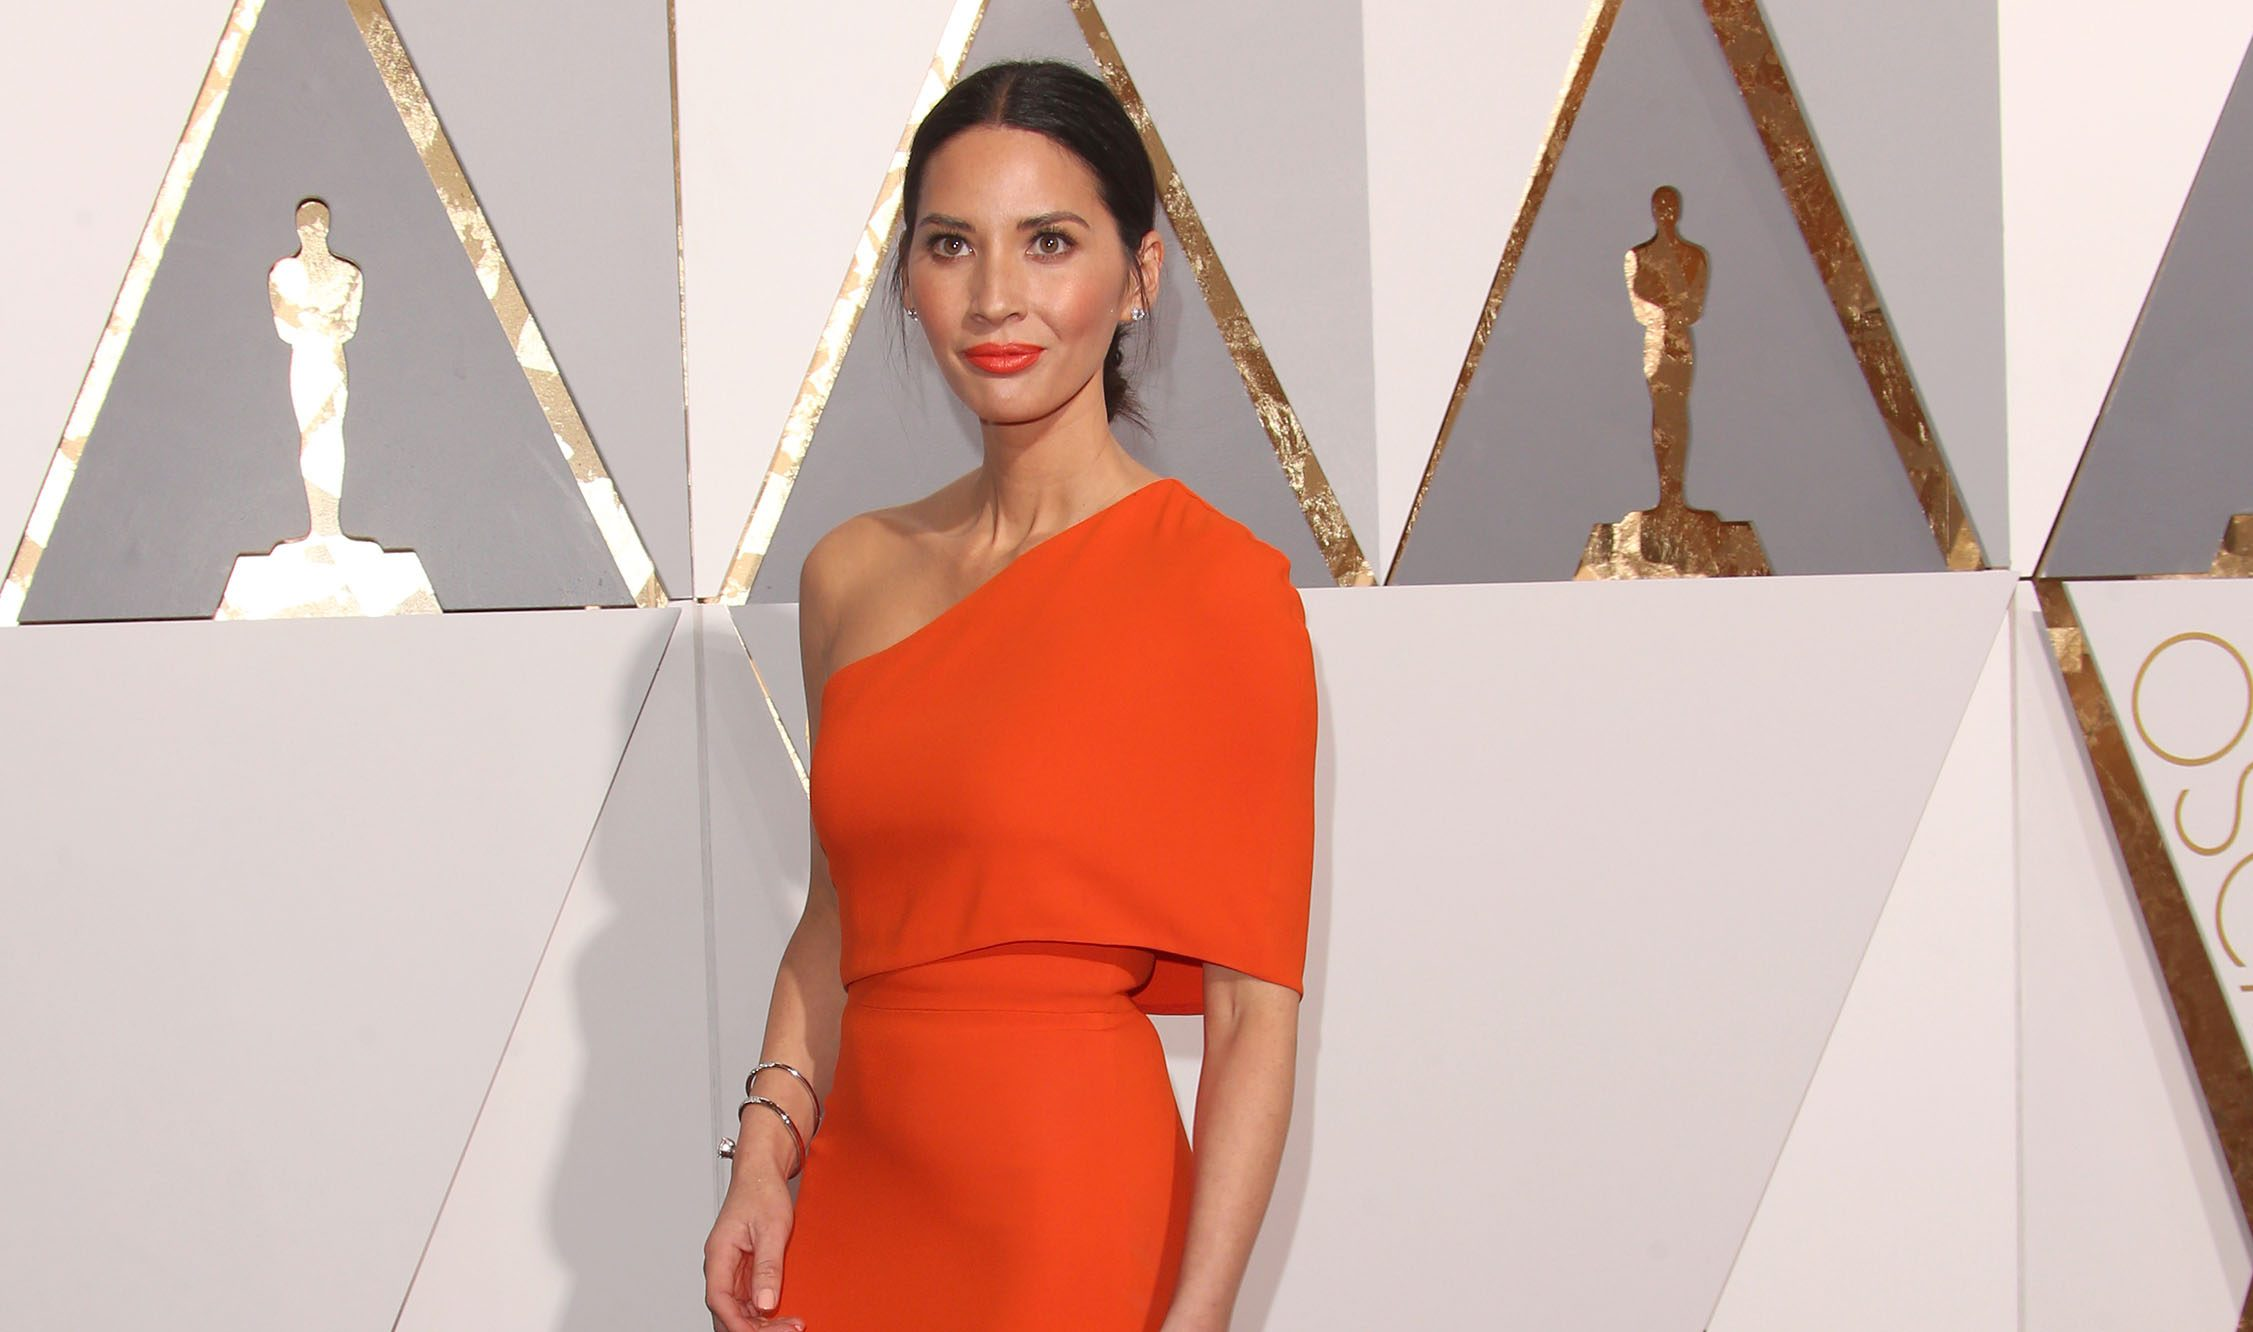 Olivia Munn Almost Landed A Role In Deadpool, Here's What We Know